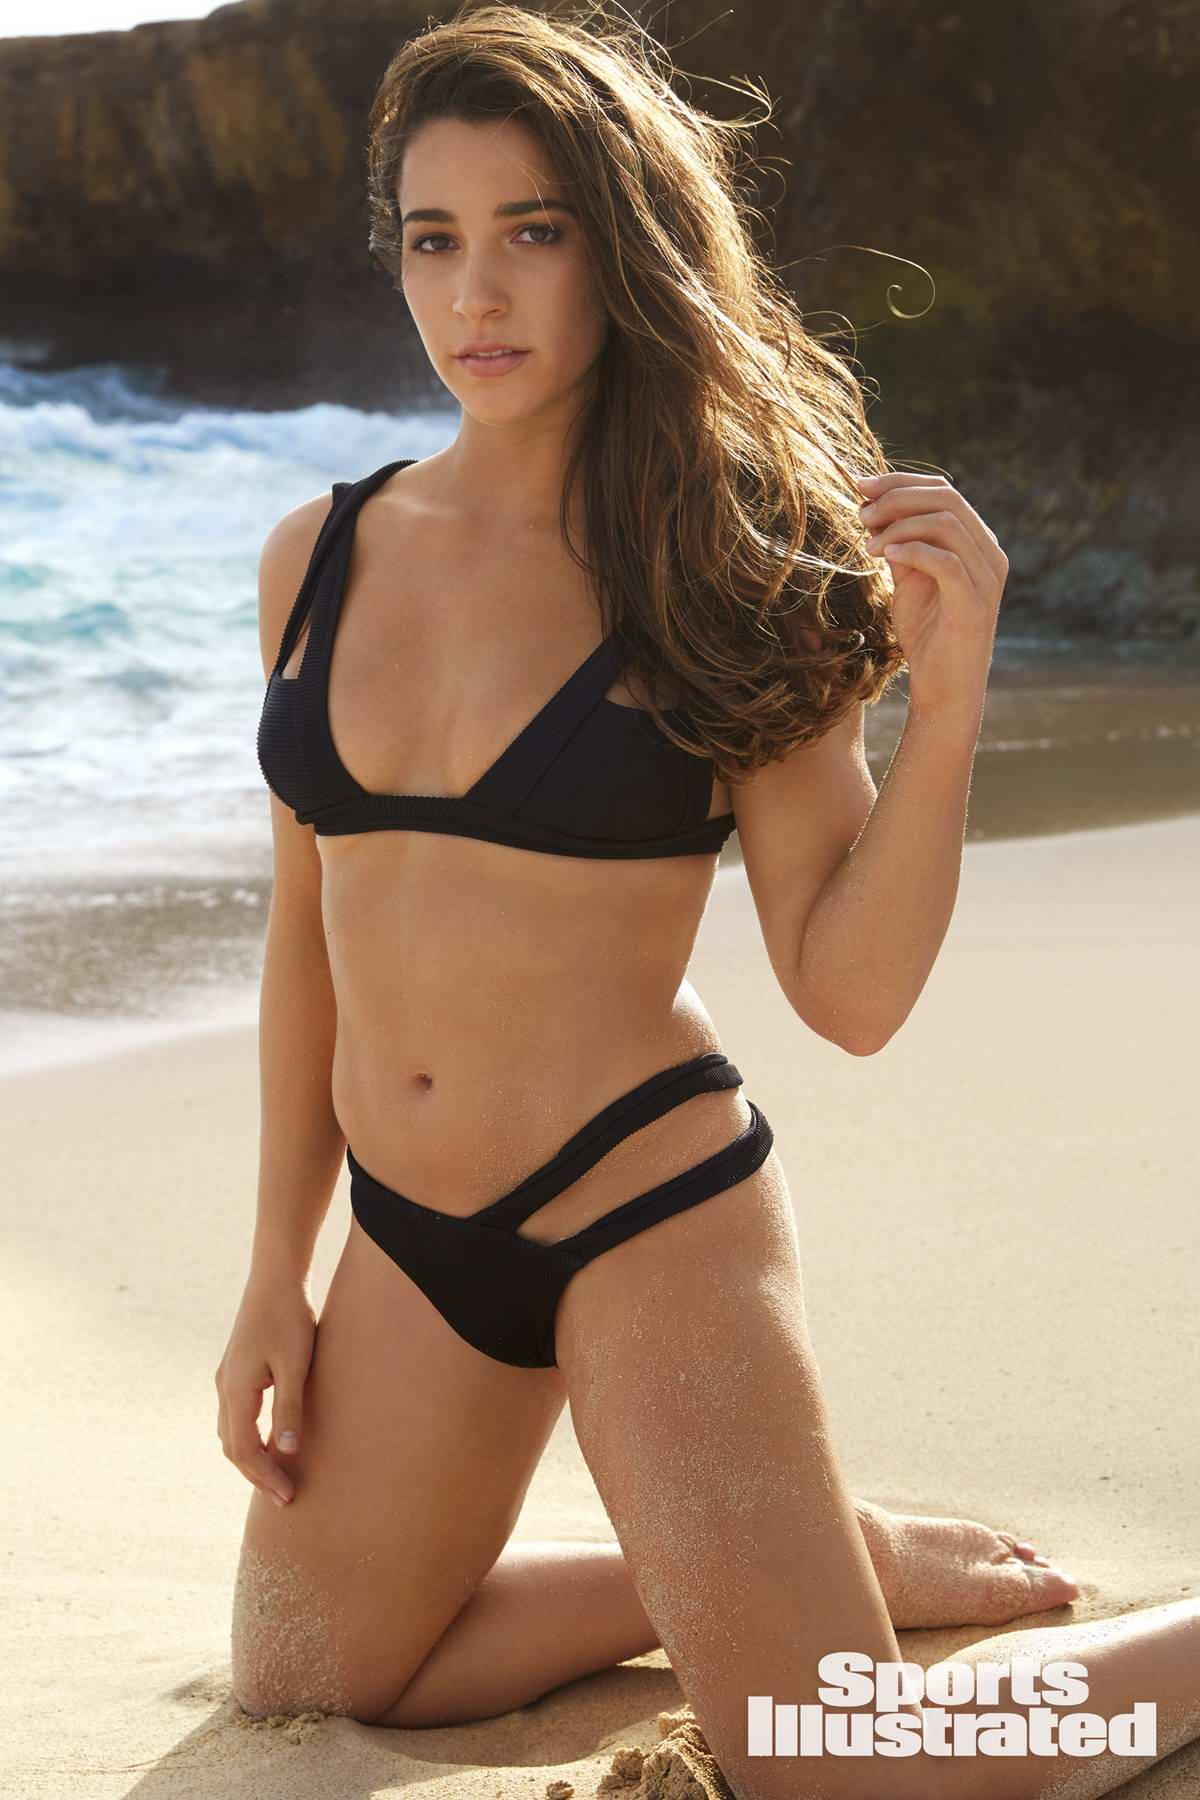 Aly Raisman in Sports Illustrated Swimsuit Issue 2018